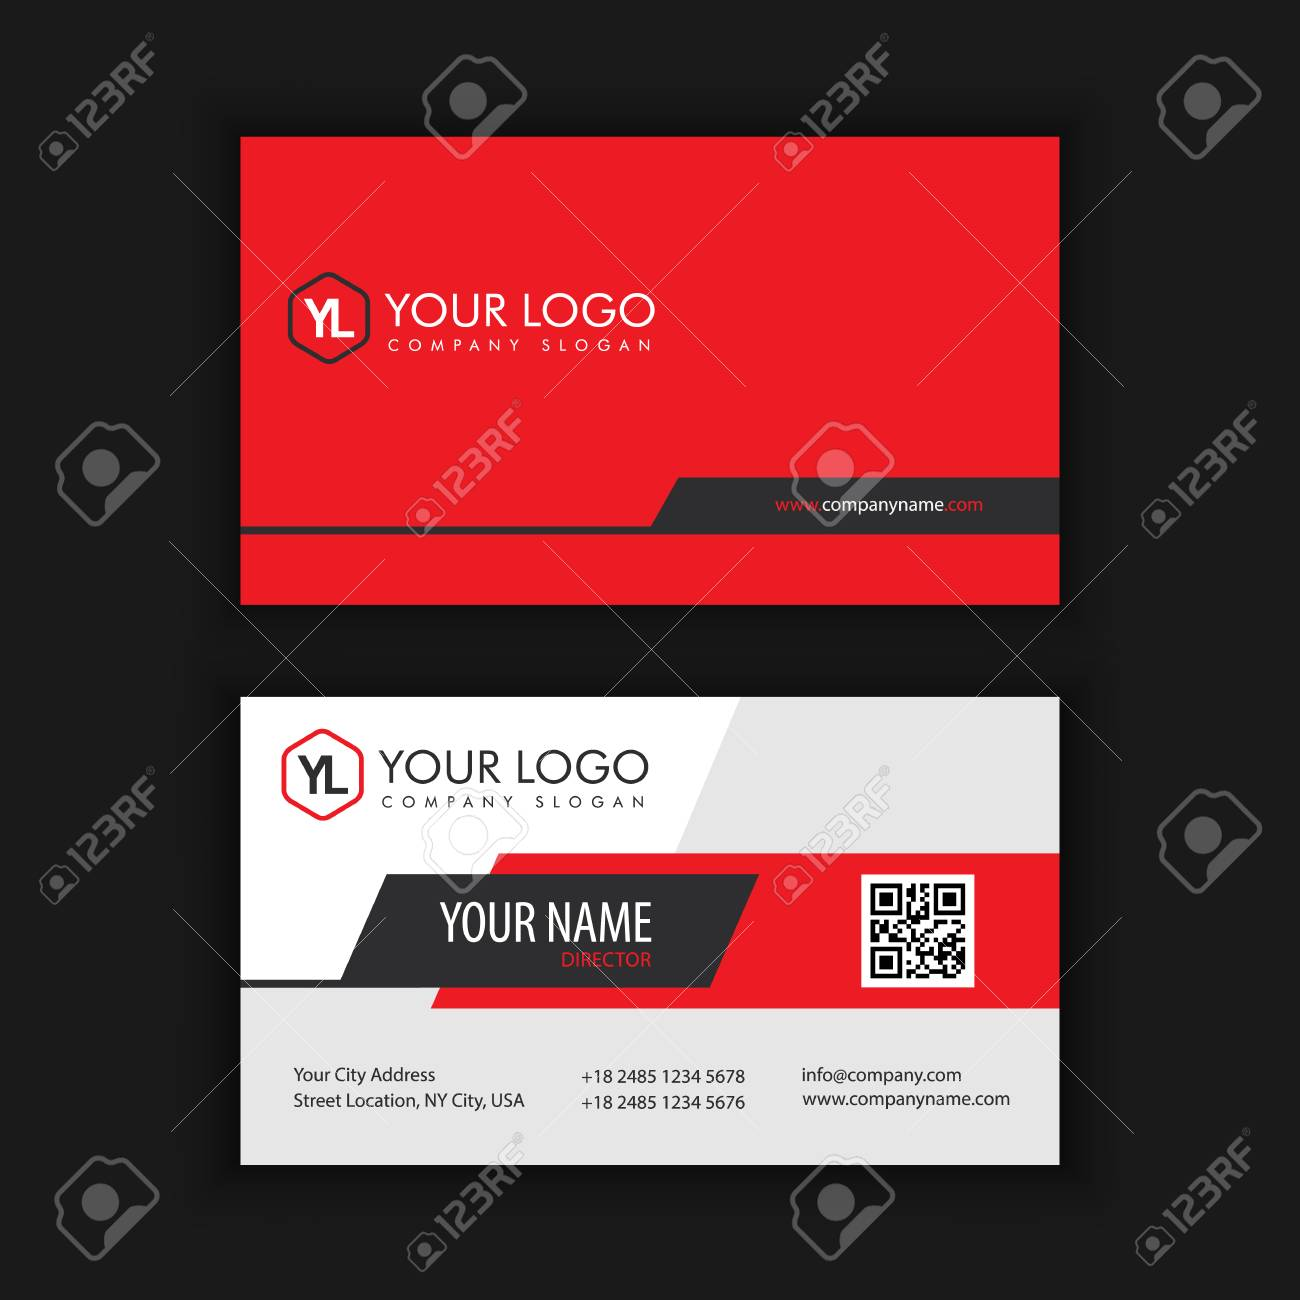 Modern Creative and Clean Business Card Template with Red Black color - 89409599